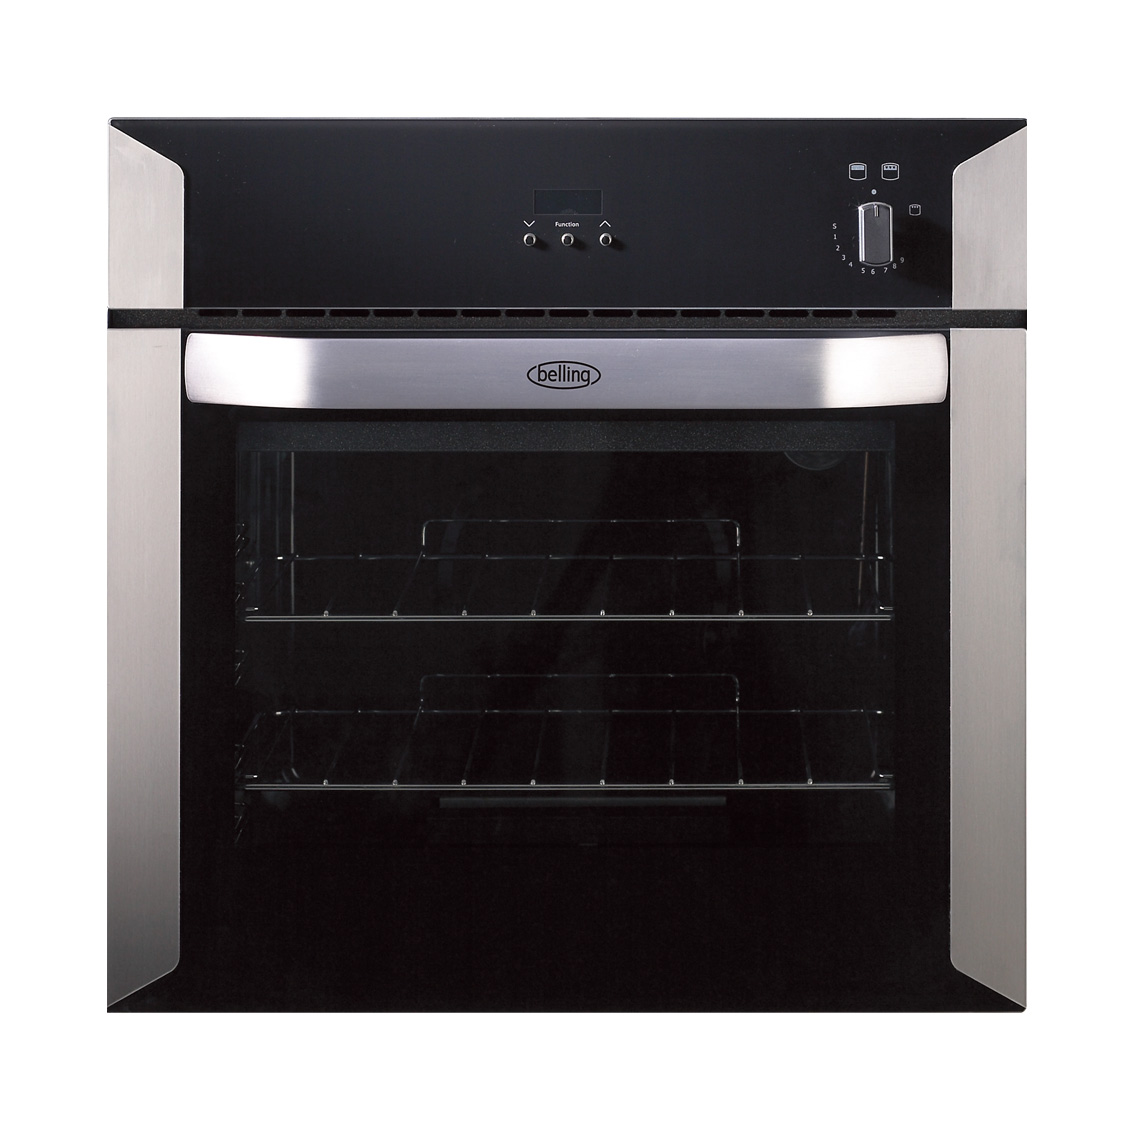 Belling Bi60g Conv Built In Ovens Rangecookers Co Uk